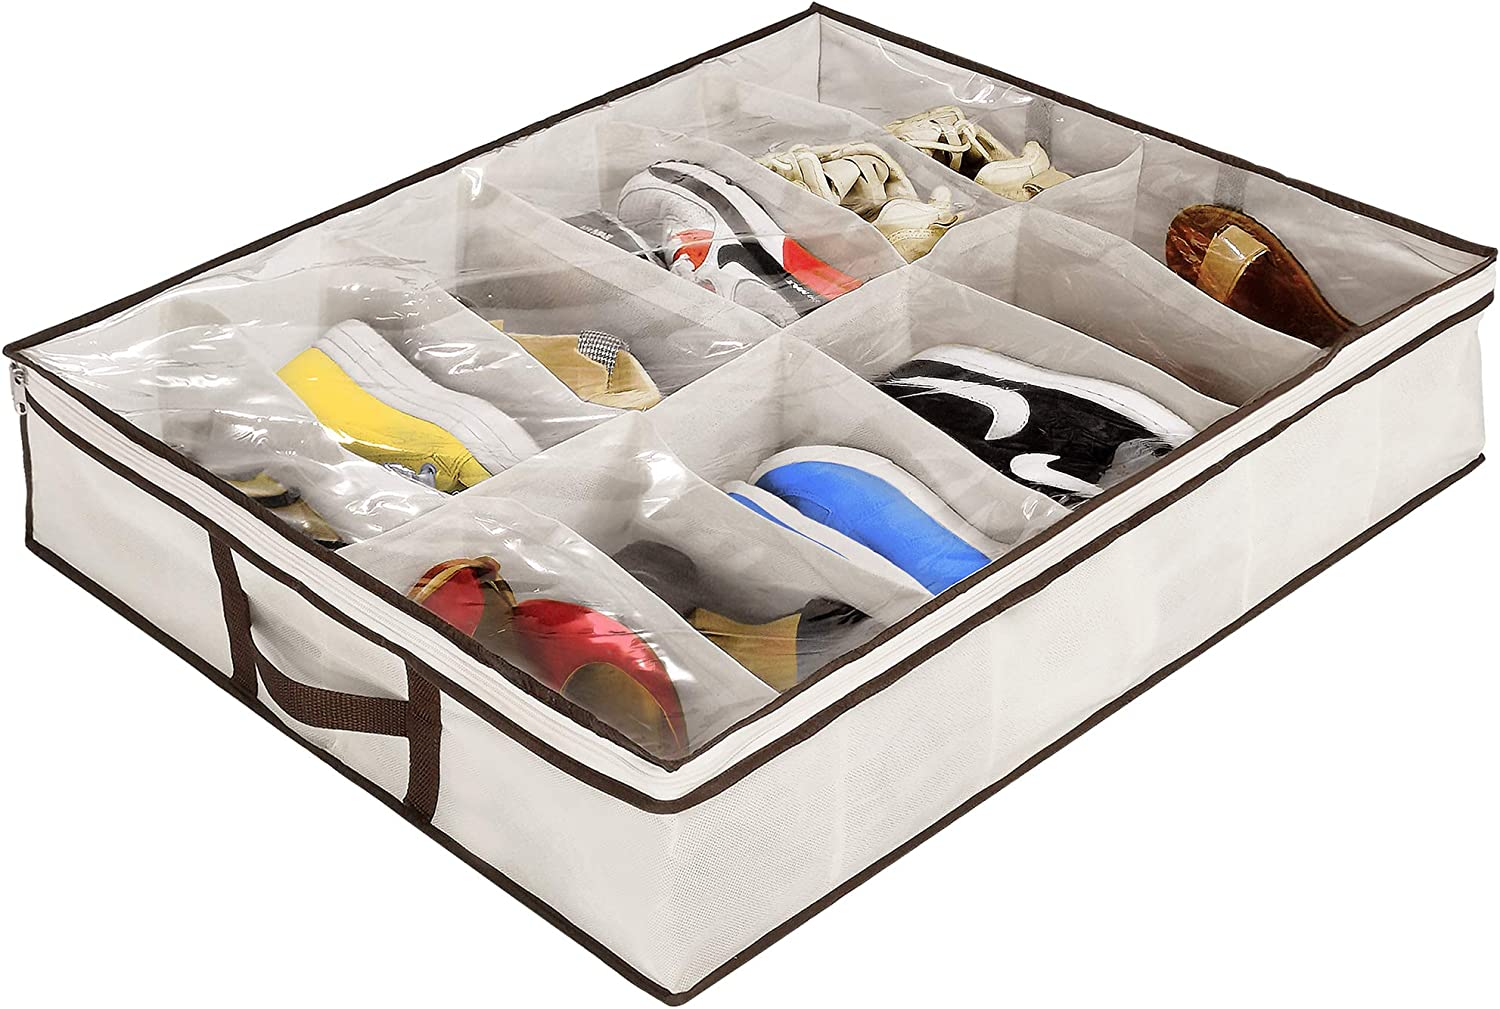 Amazon Com Ziz Home Under Bed Shoe Organizer 1 2 Pack For